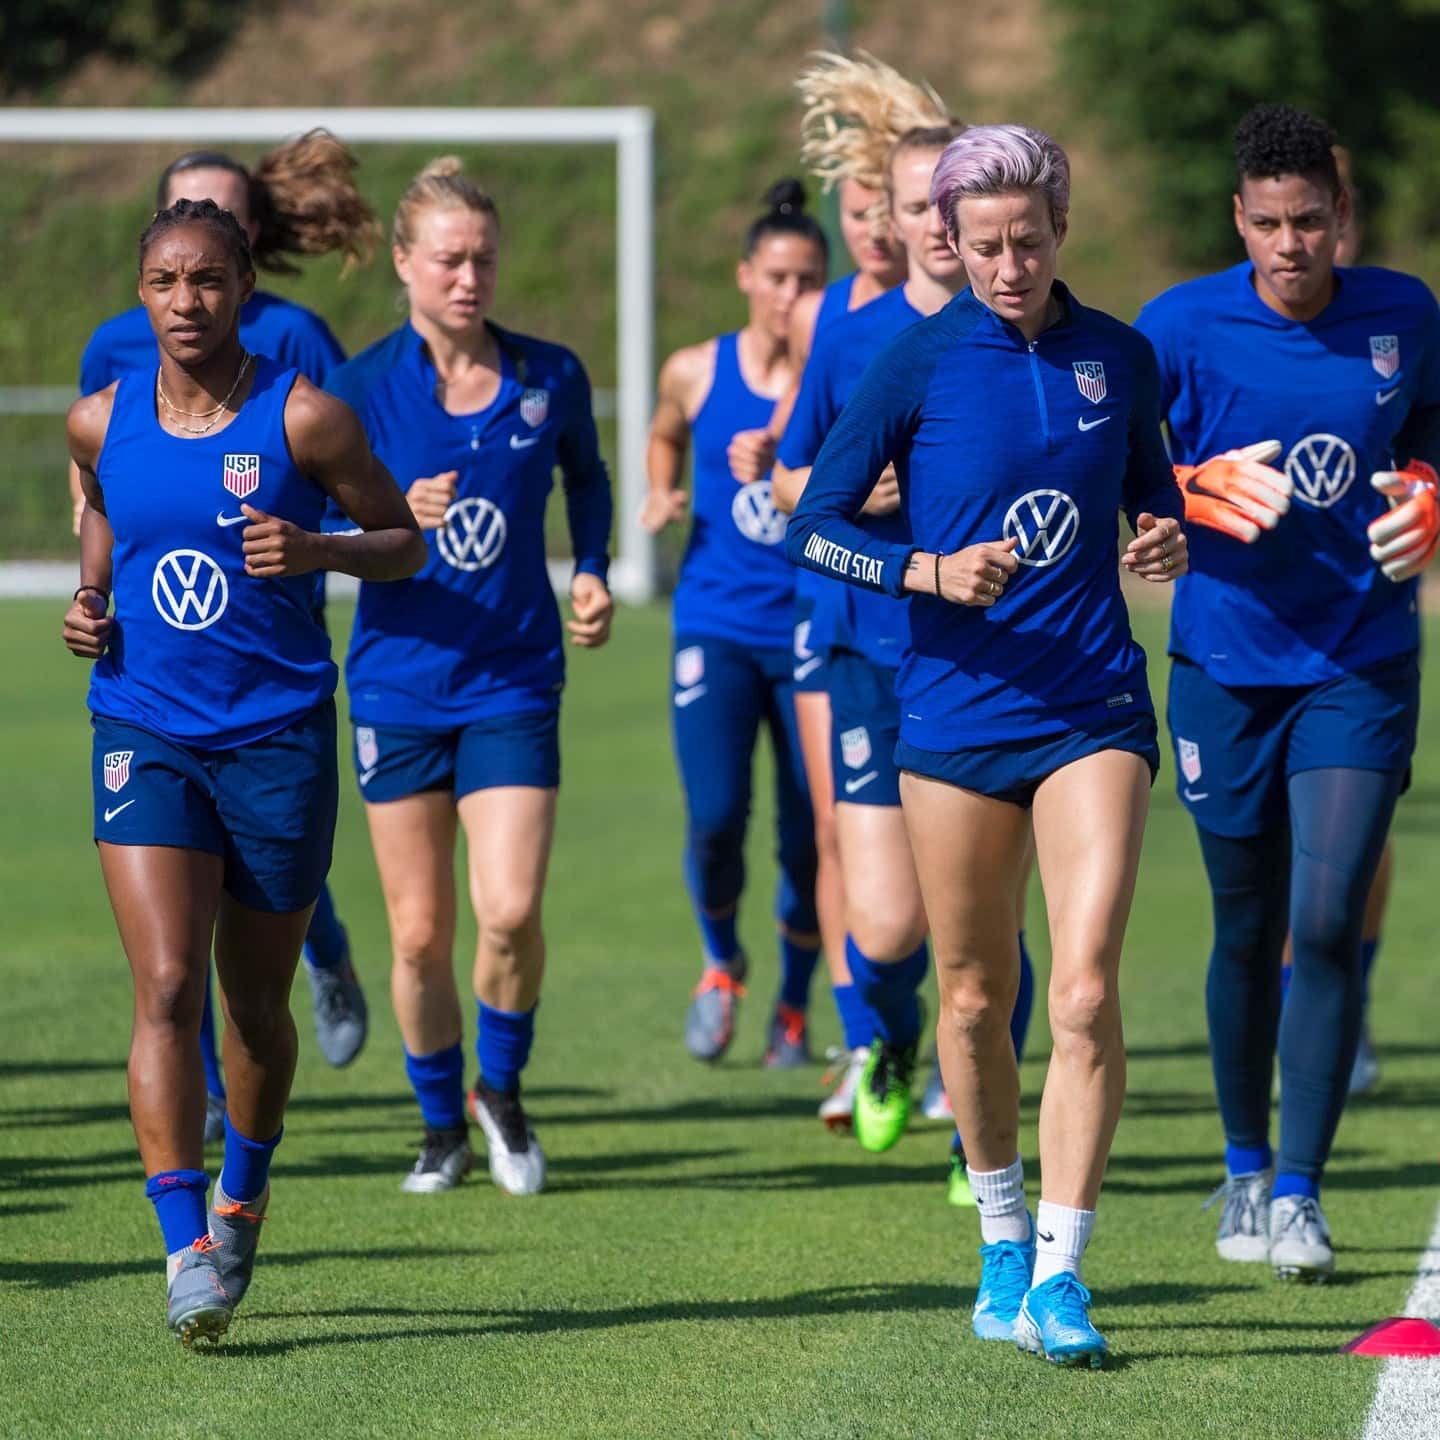 2019 Women's World Cup Champions To Hold Public Training On August 2 At Rose Bowl